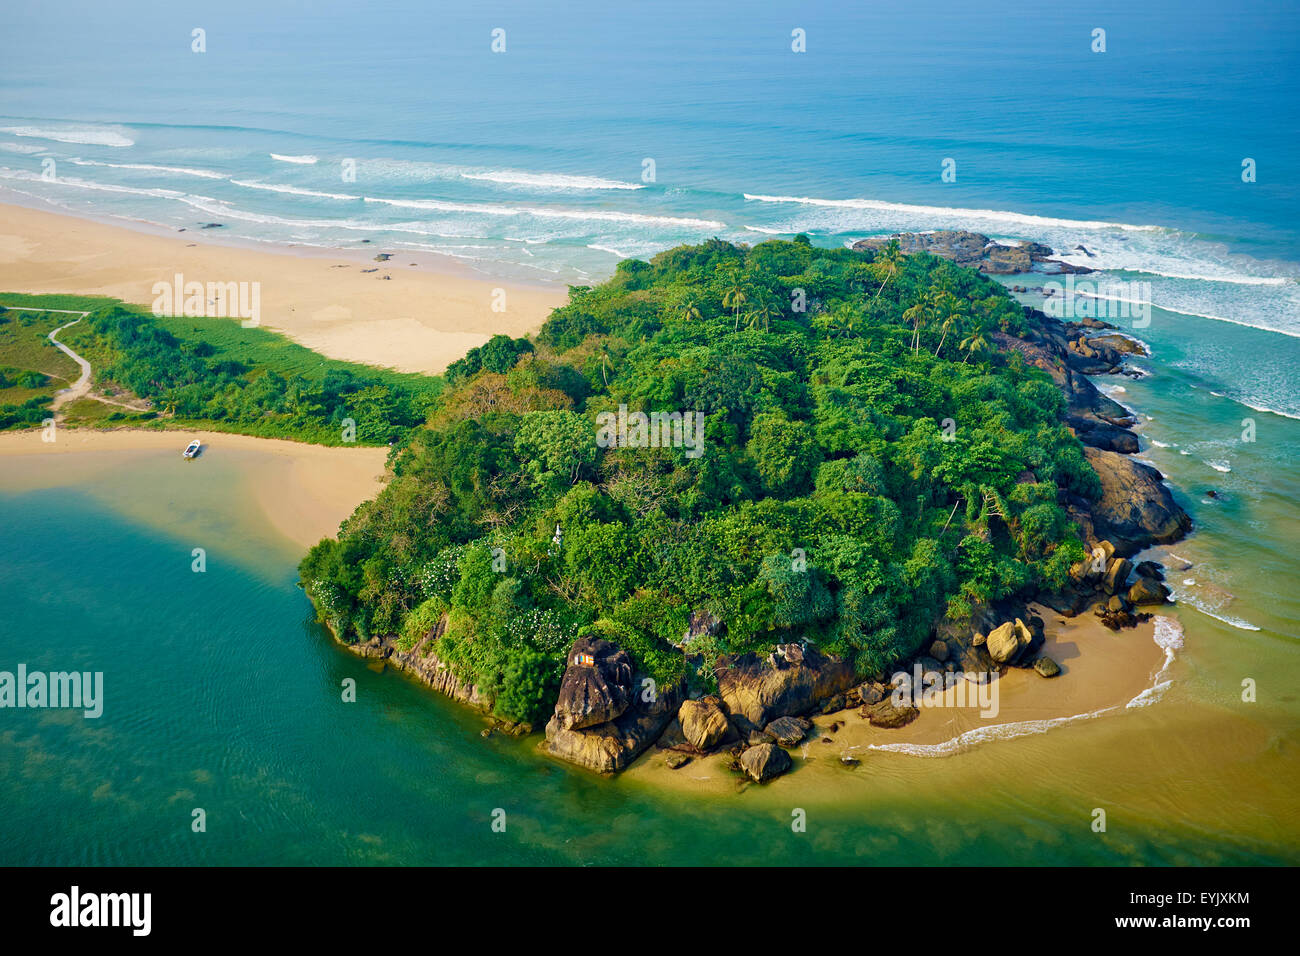 Sri Lanka, West Coast, Bentota, beach and river of Bentota, aerial view Stock Photo